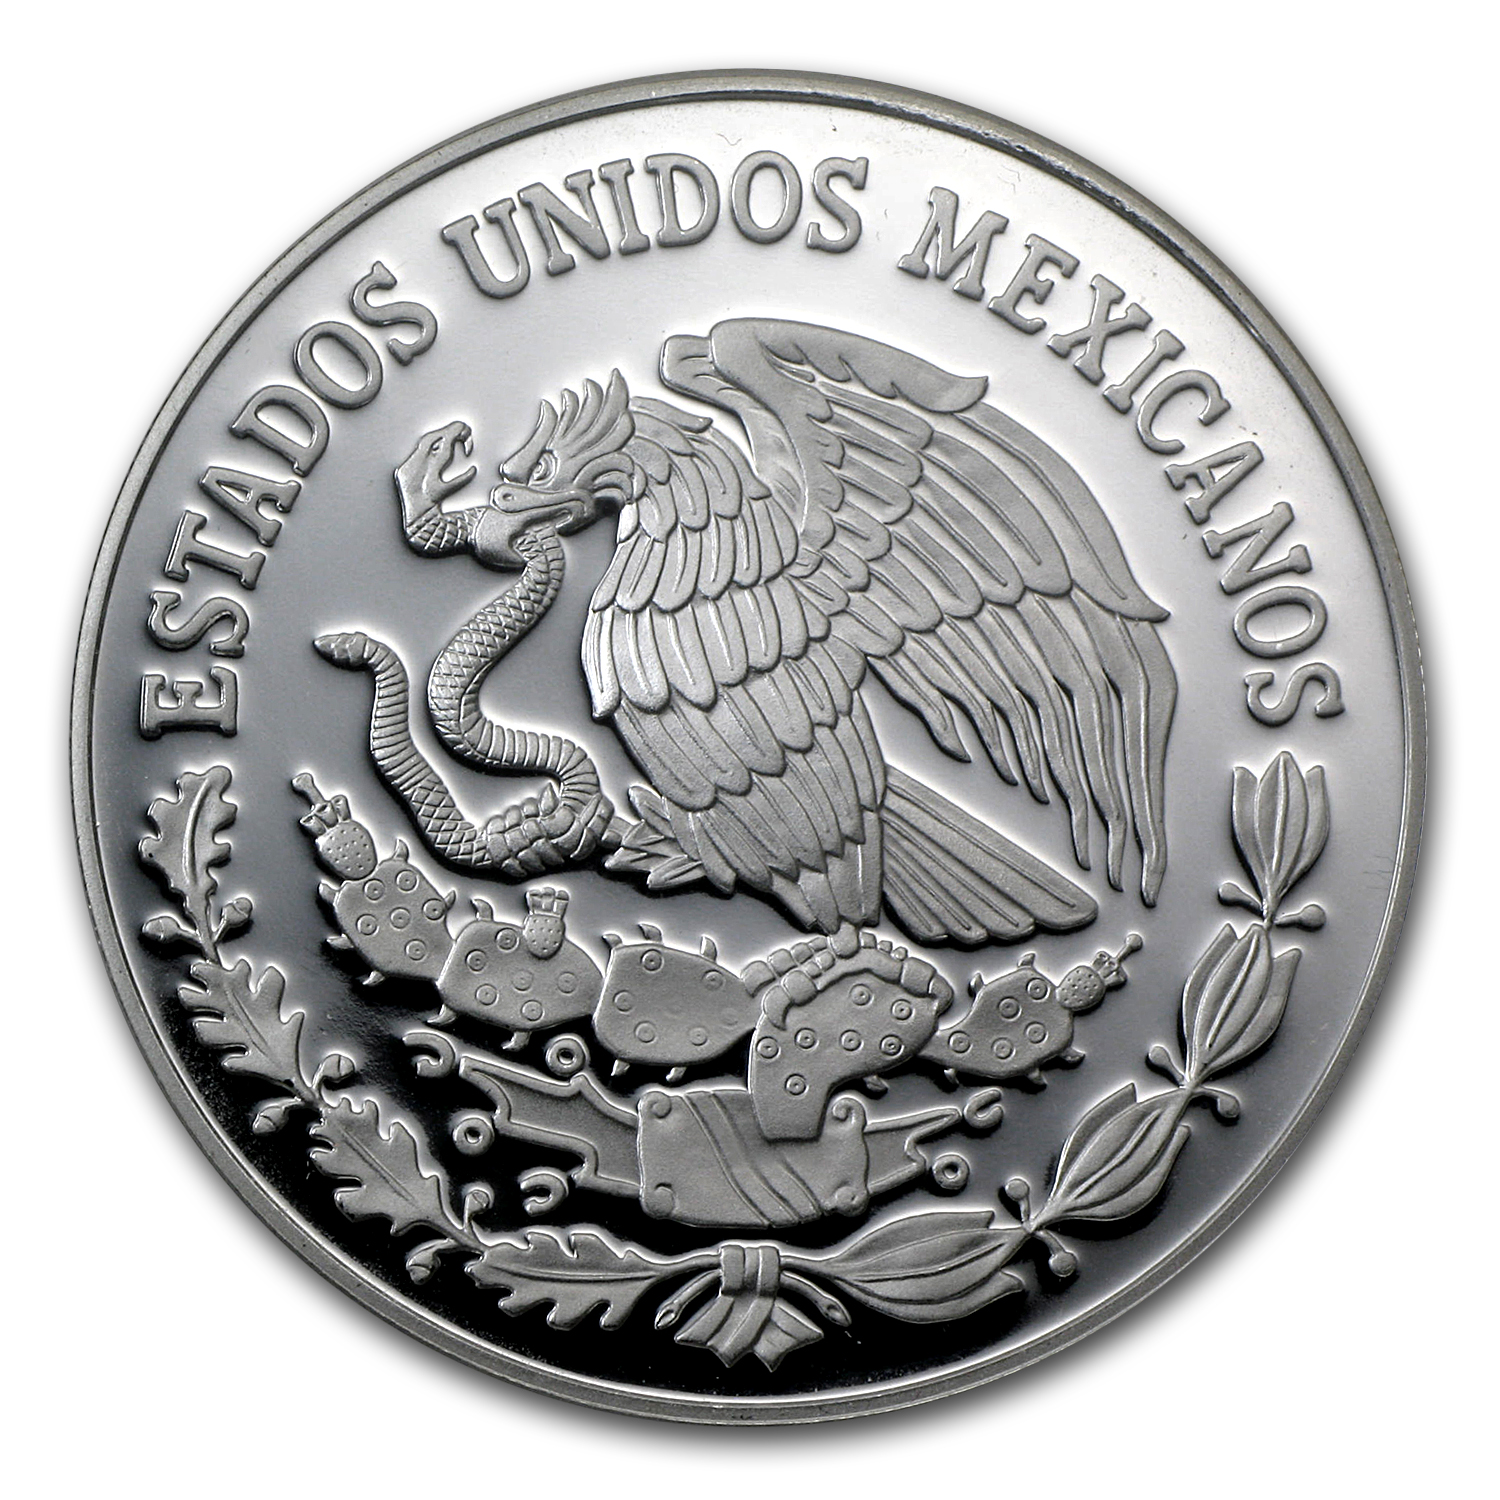 2010 Mexico Silver 2 oz Dolores Parish Bicentenario